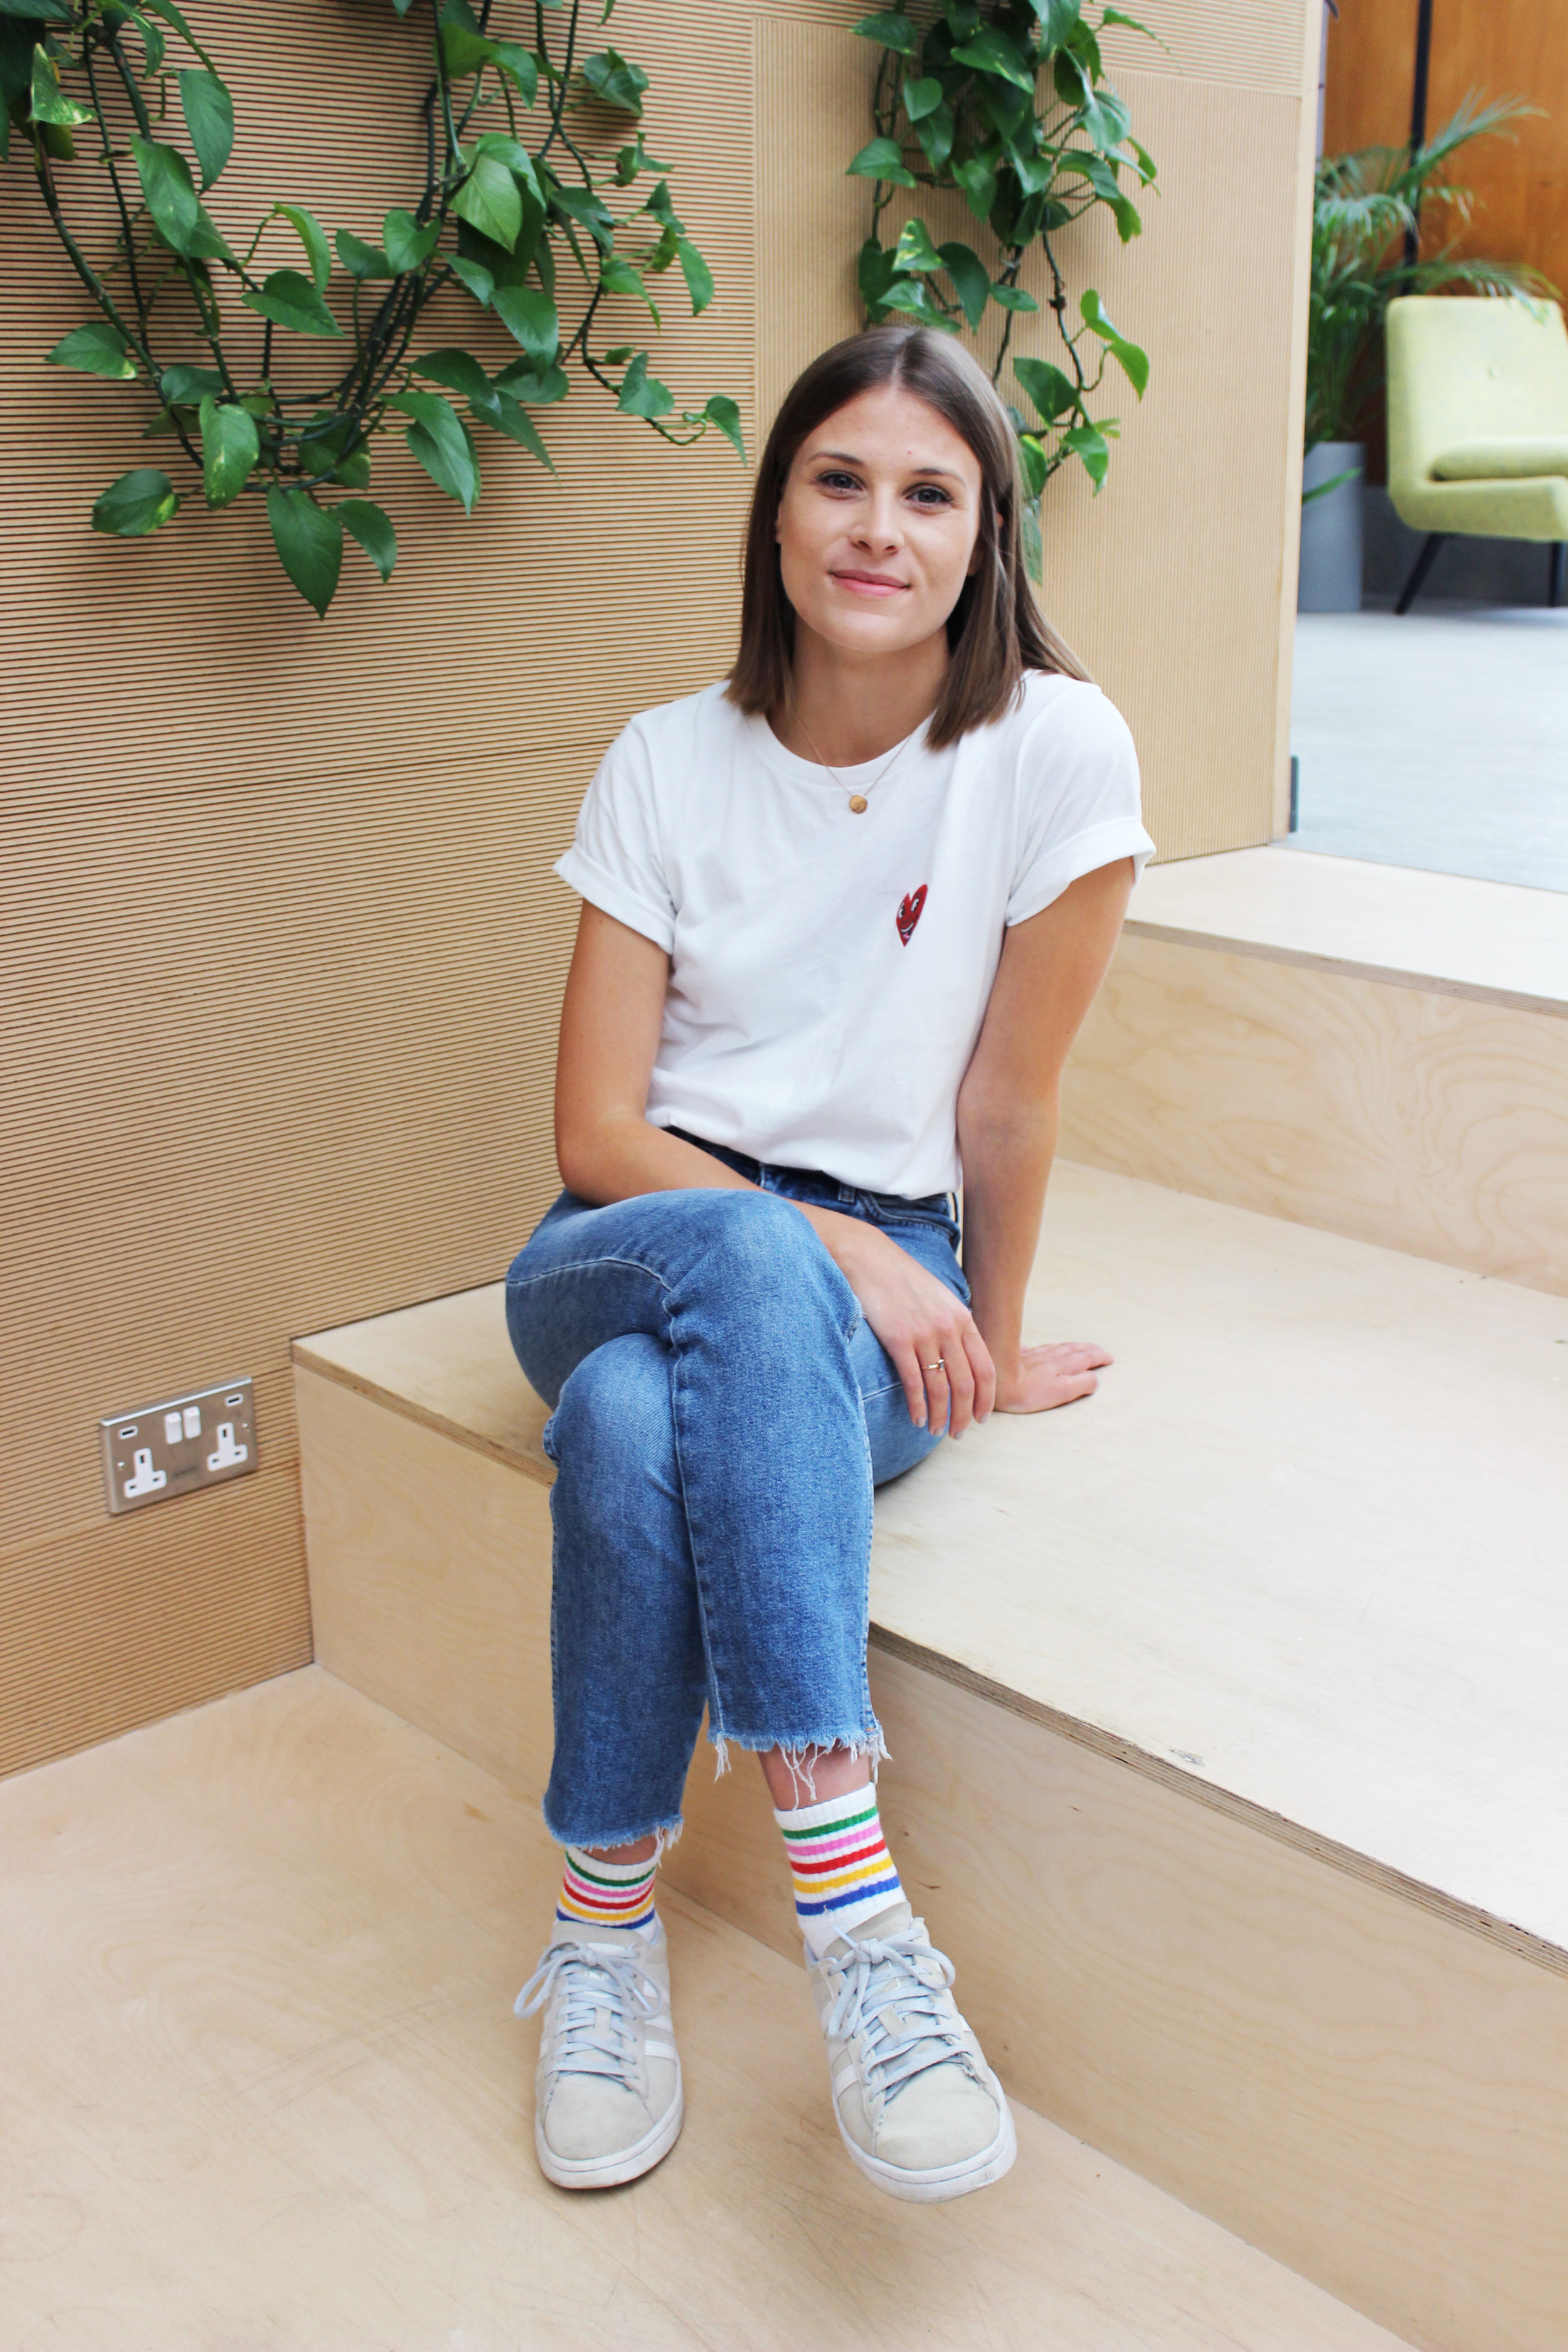 Emily Mounsey, Founder of Big Spoon